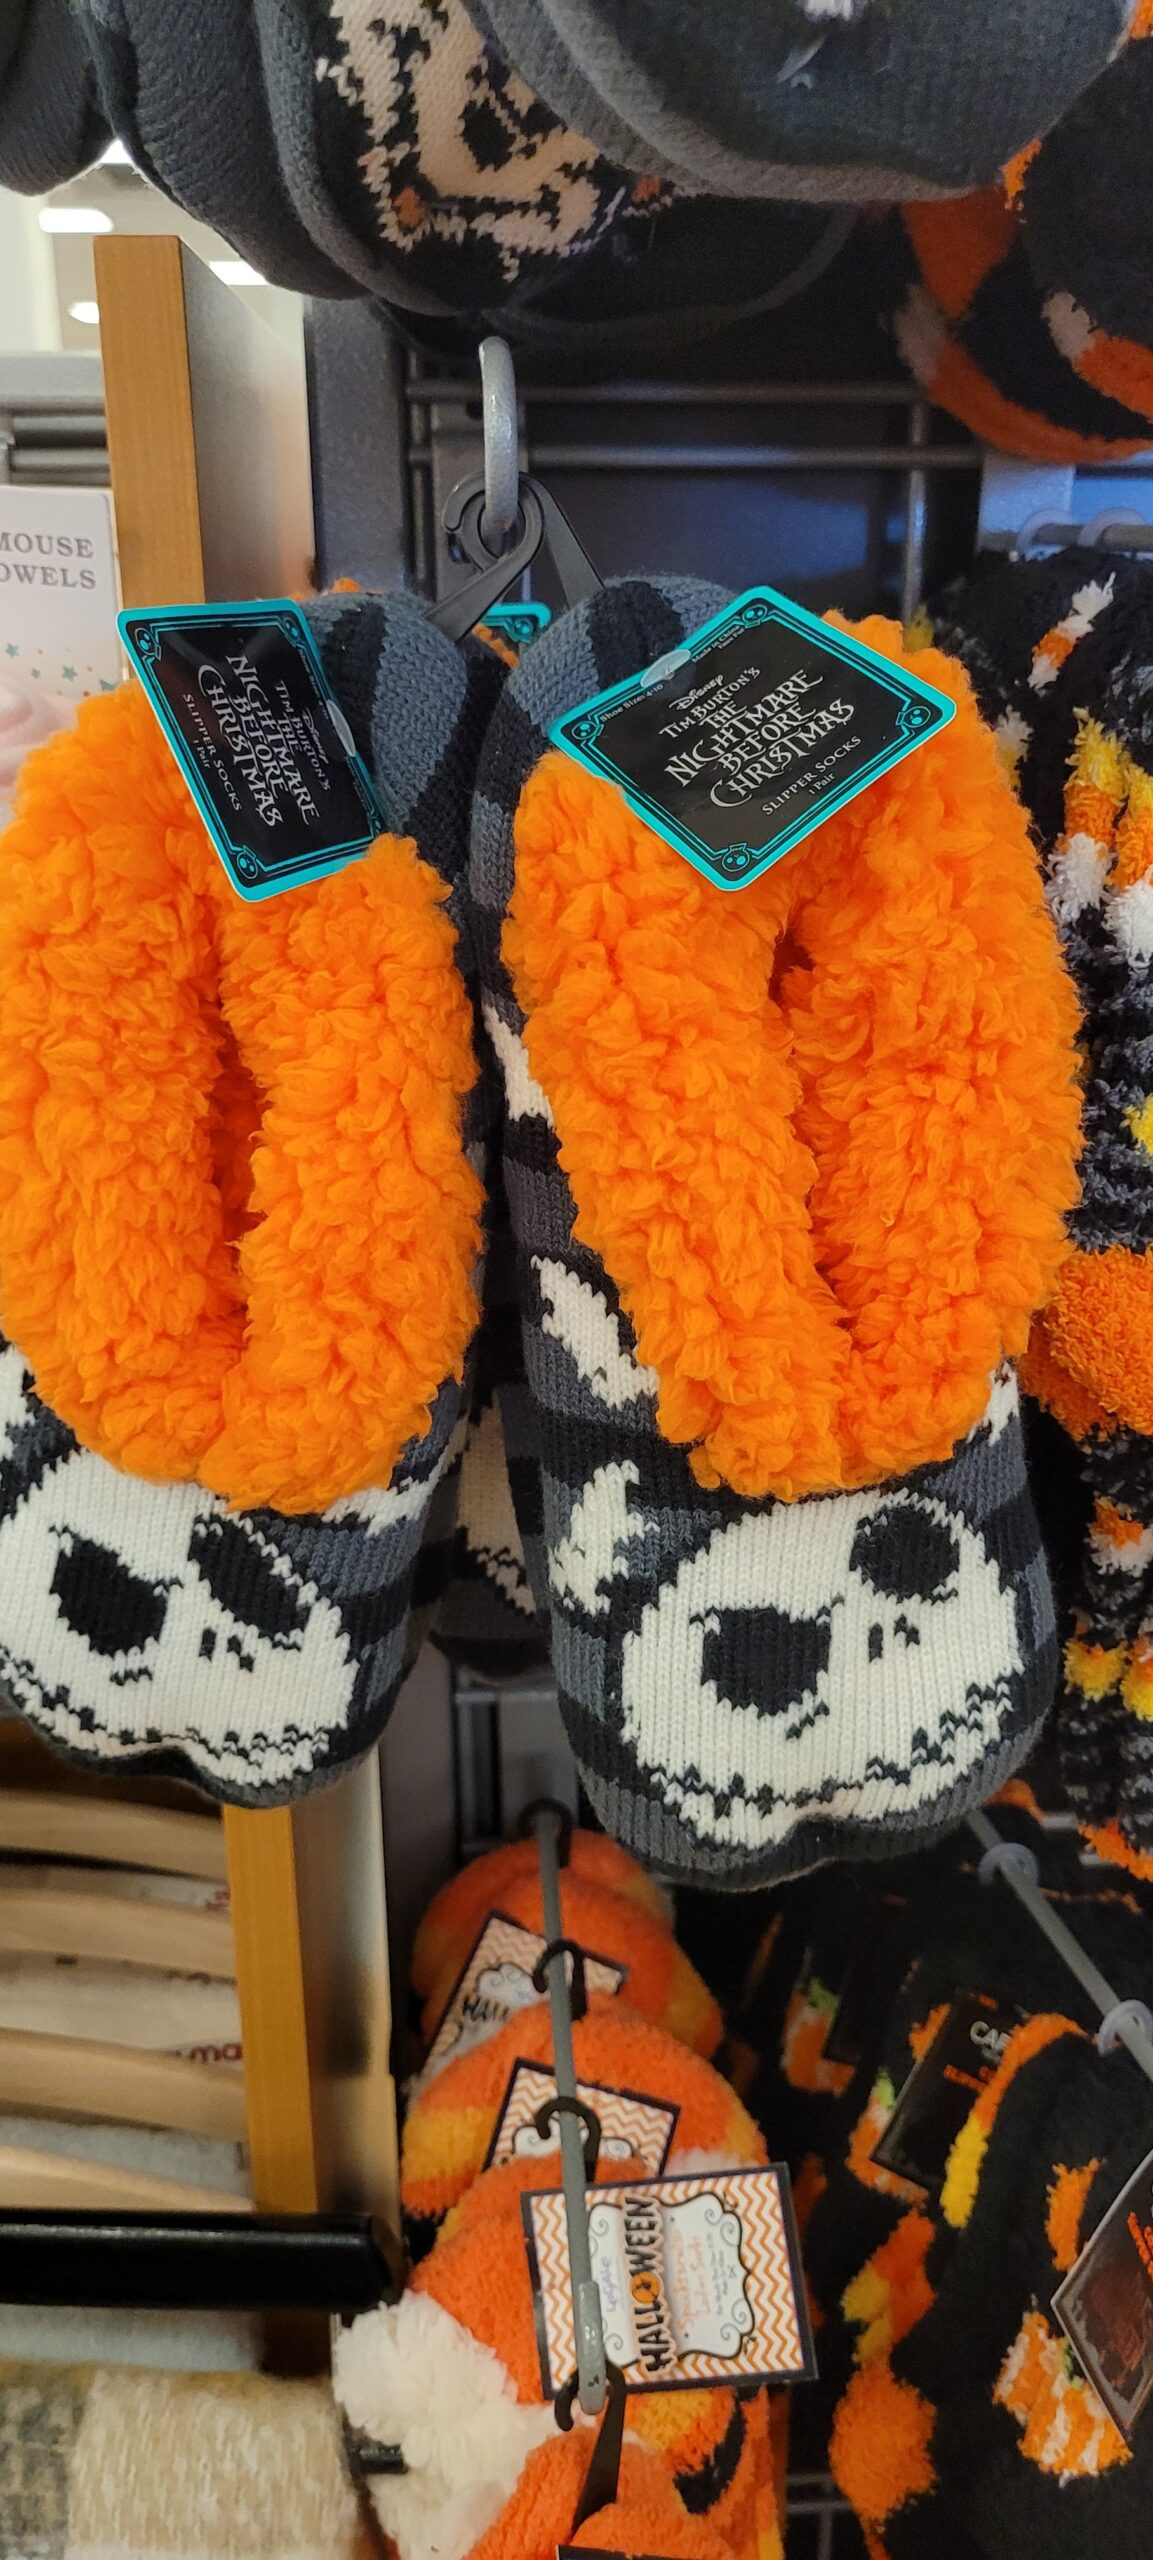 Disney Halloween Finds At Home Goods and TJ Maxx 6